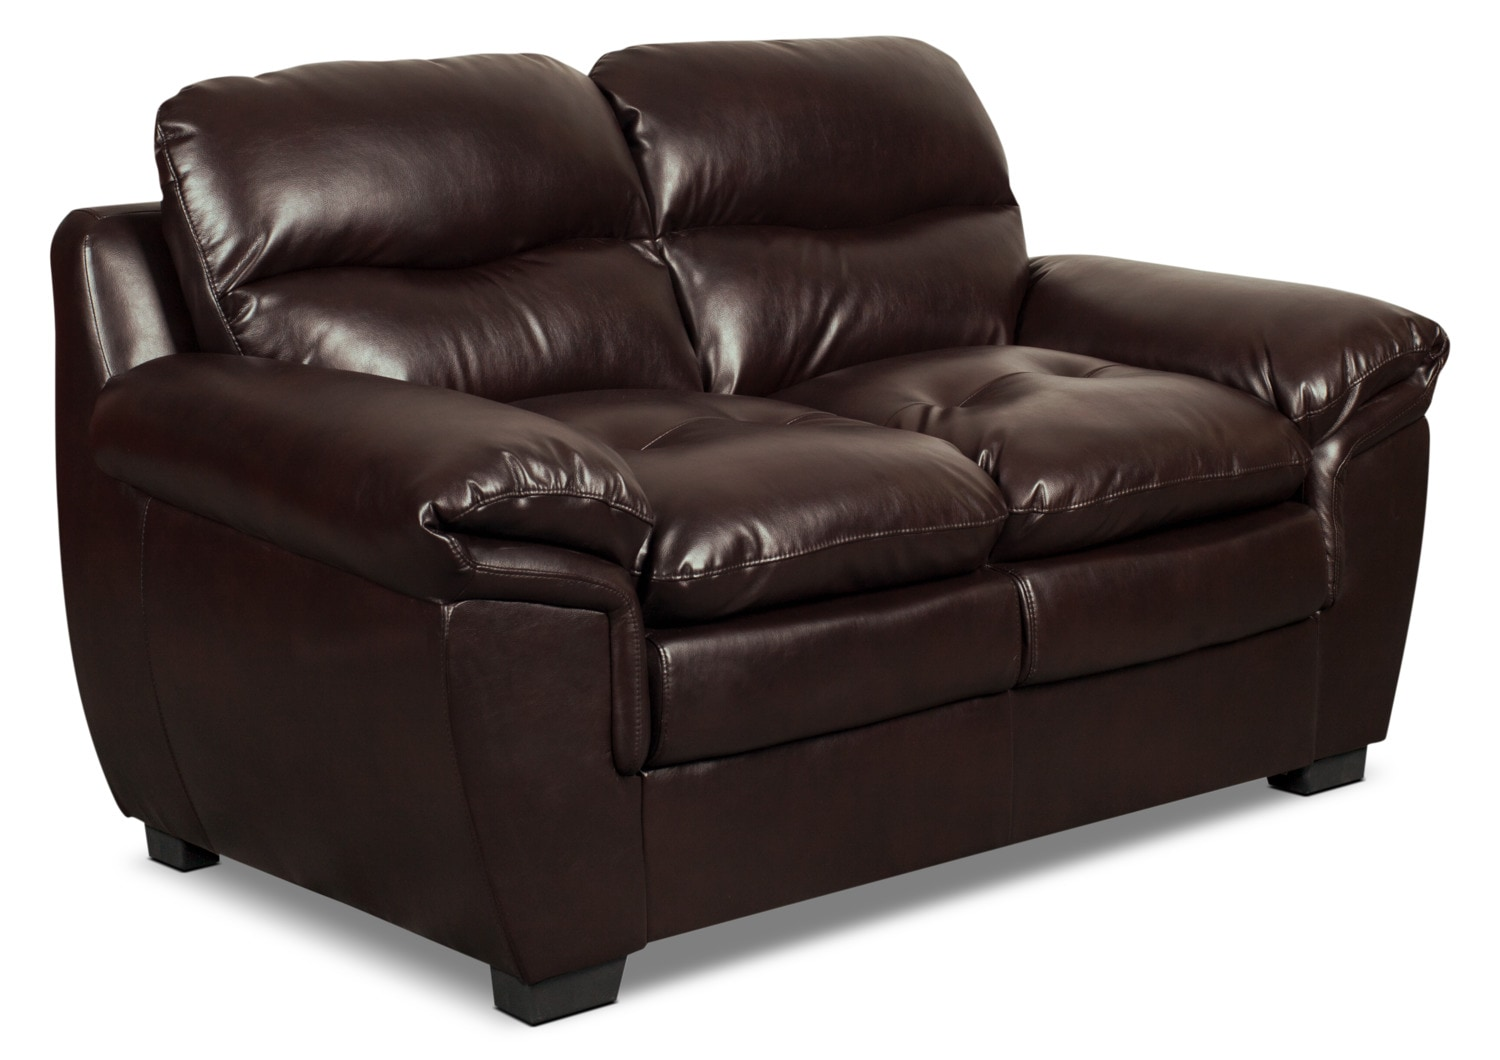 Living Room Furniture - Bryon Leather-Look Fabric Loveseat – Brown